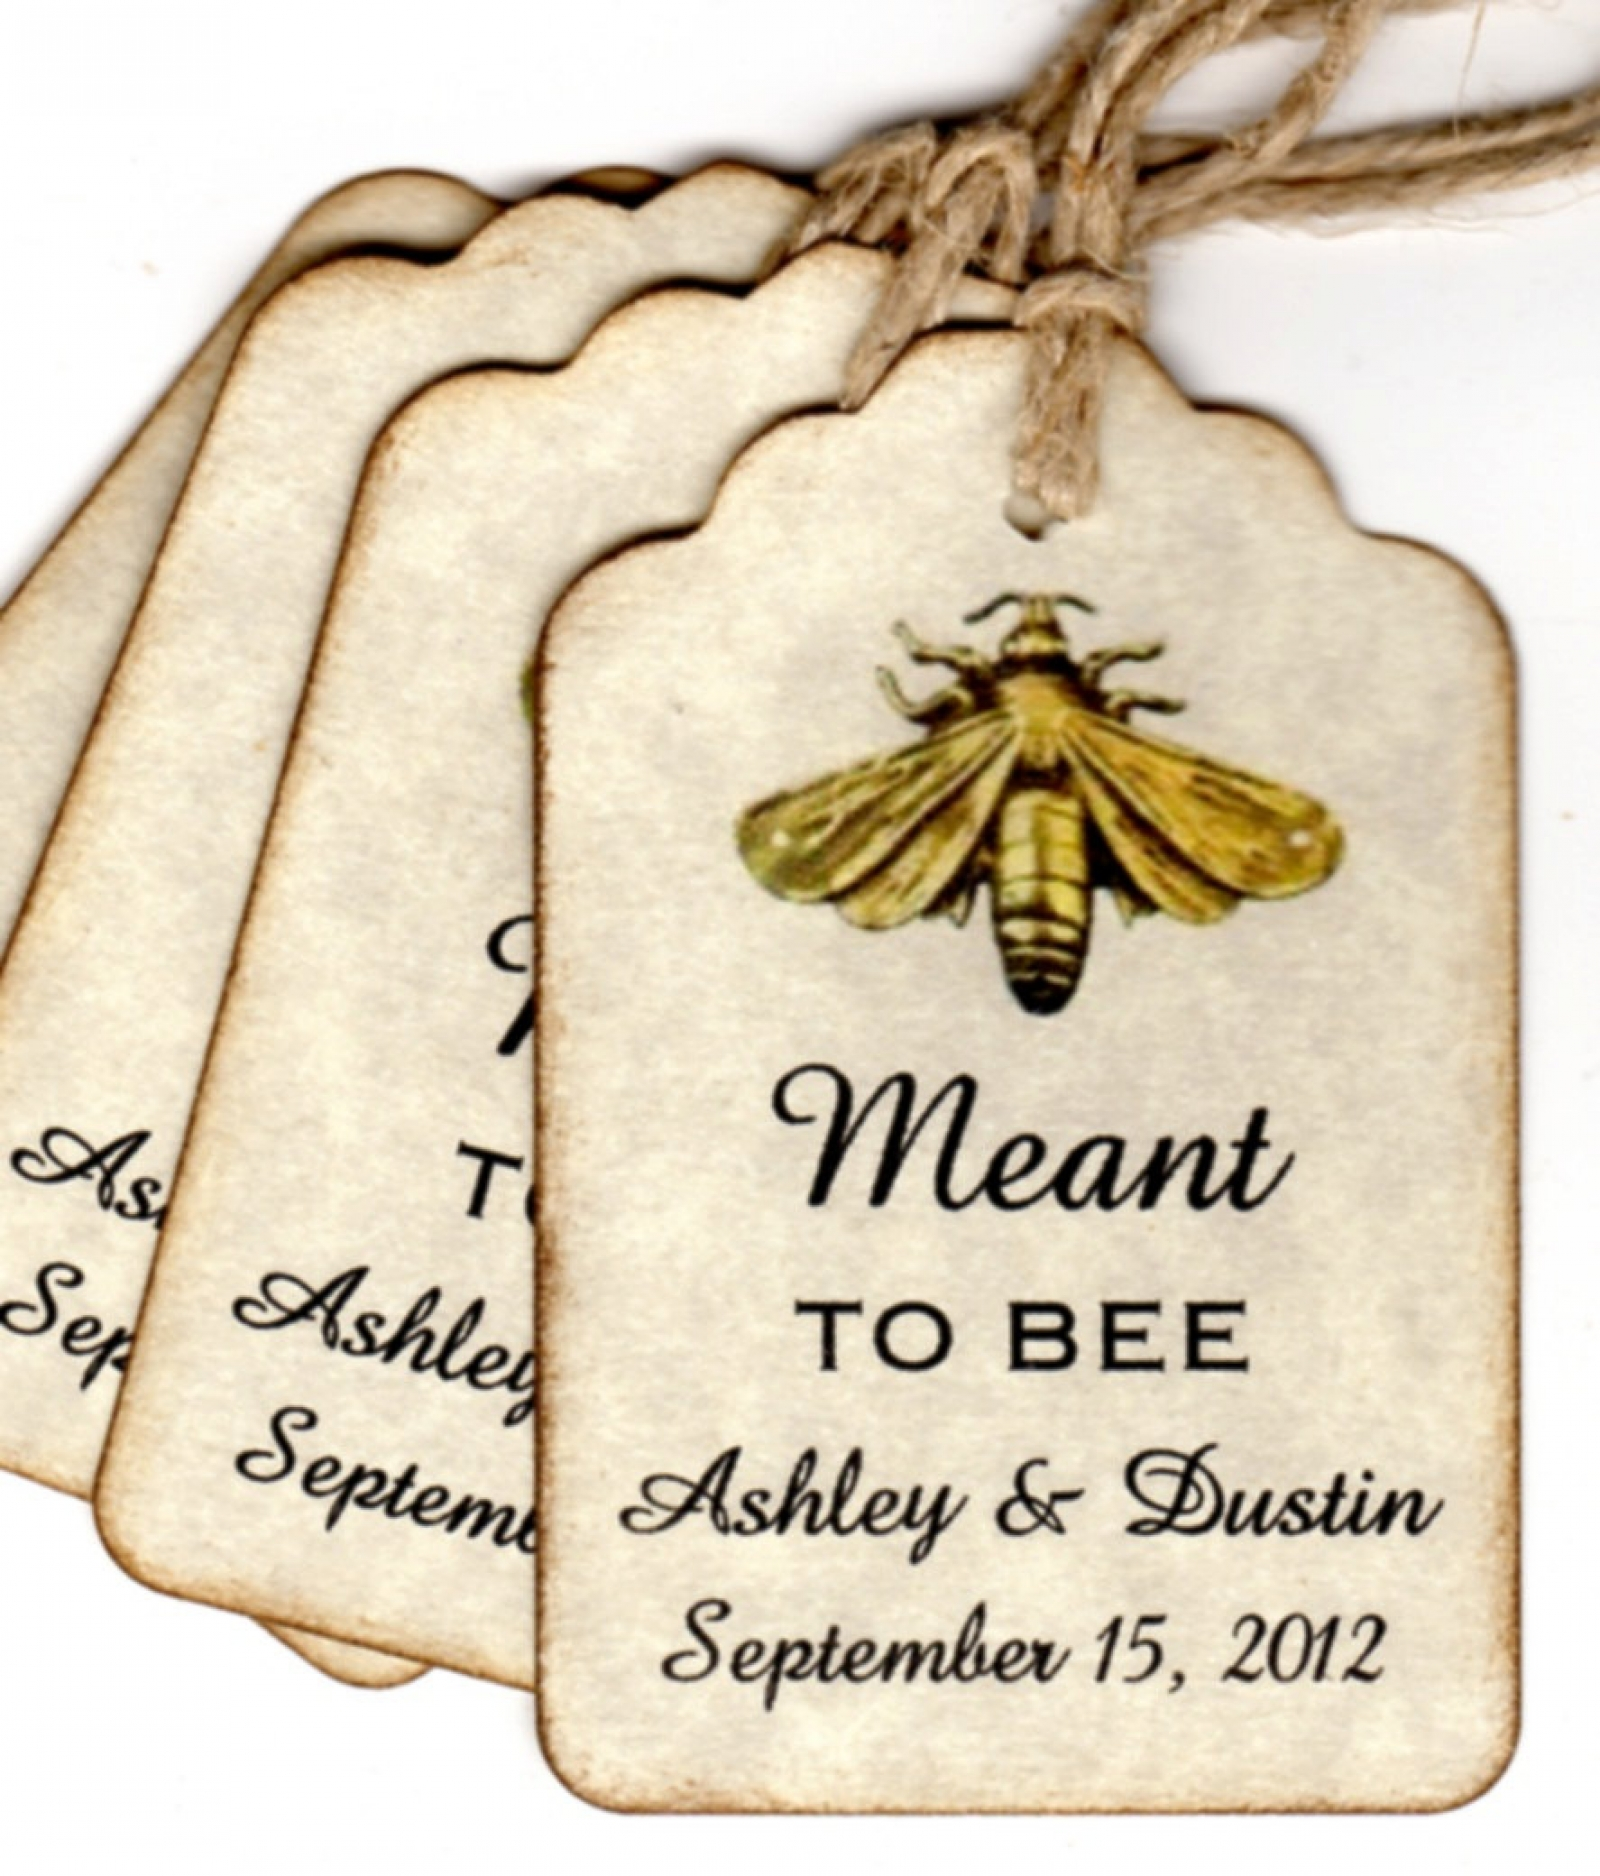 100 meant to bee wedding favor t tags wedding wish tags